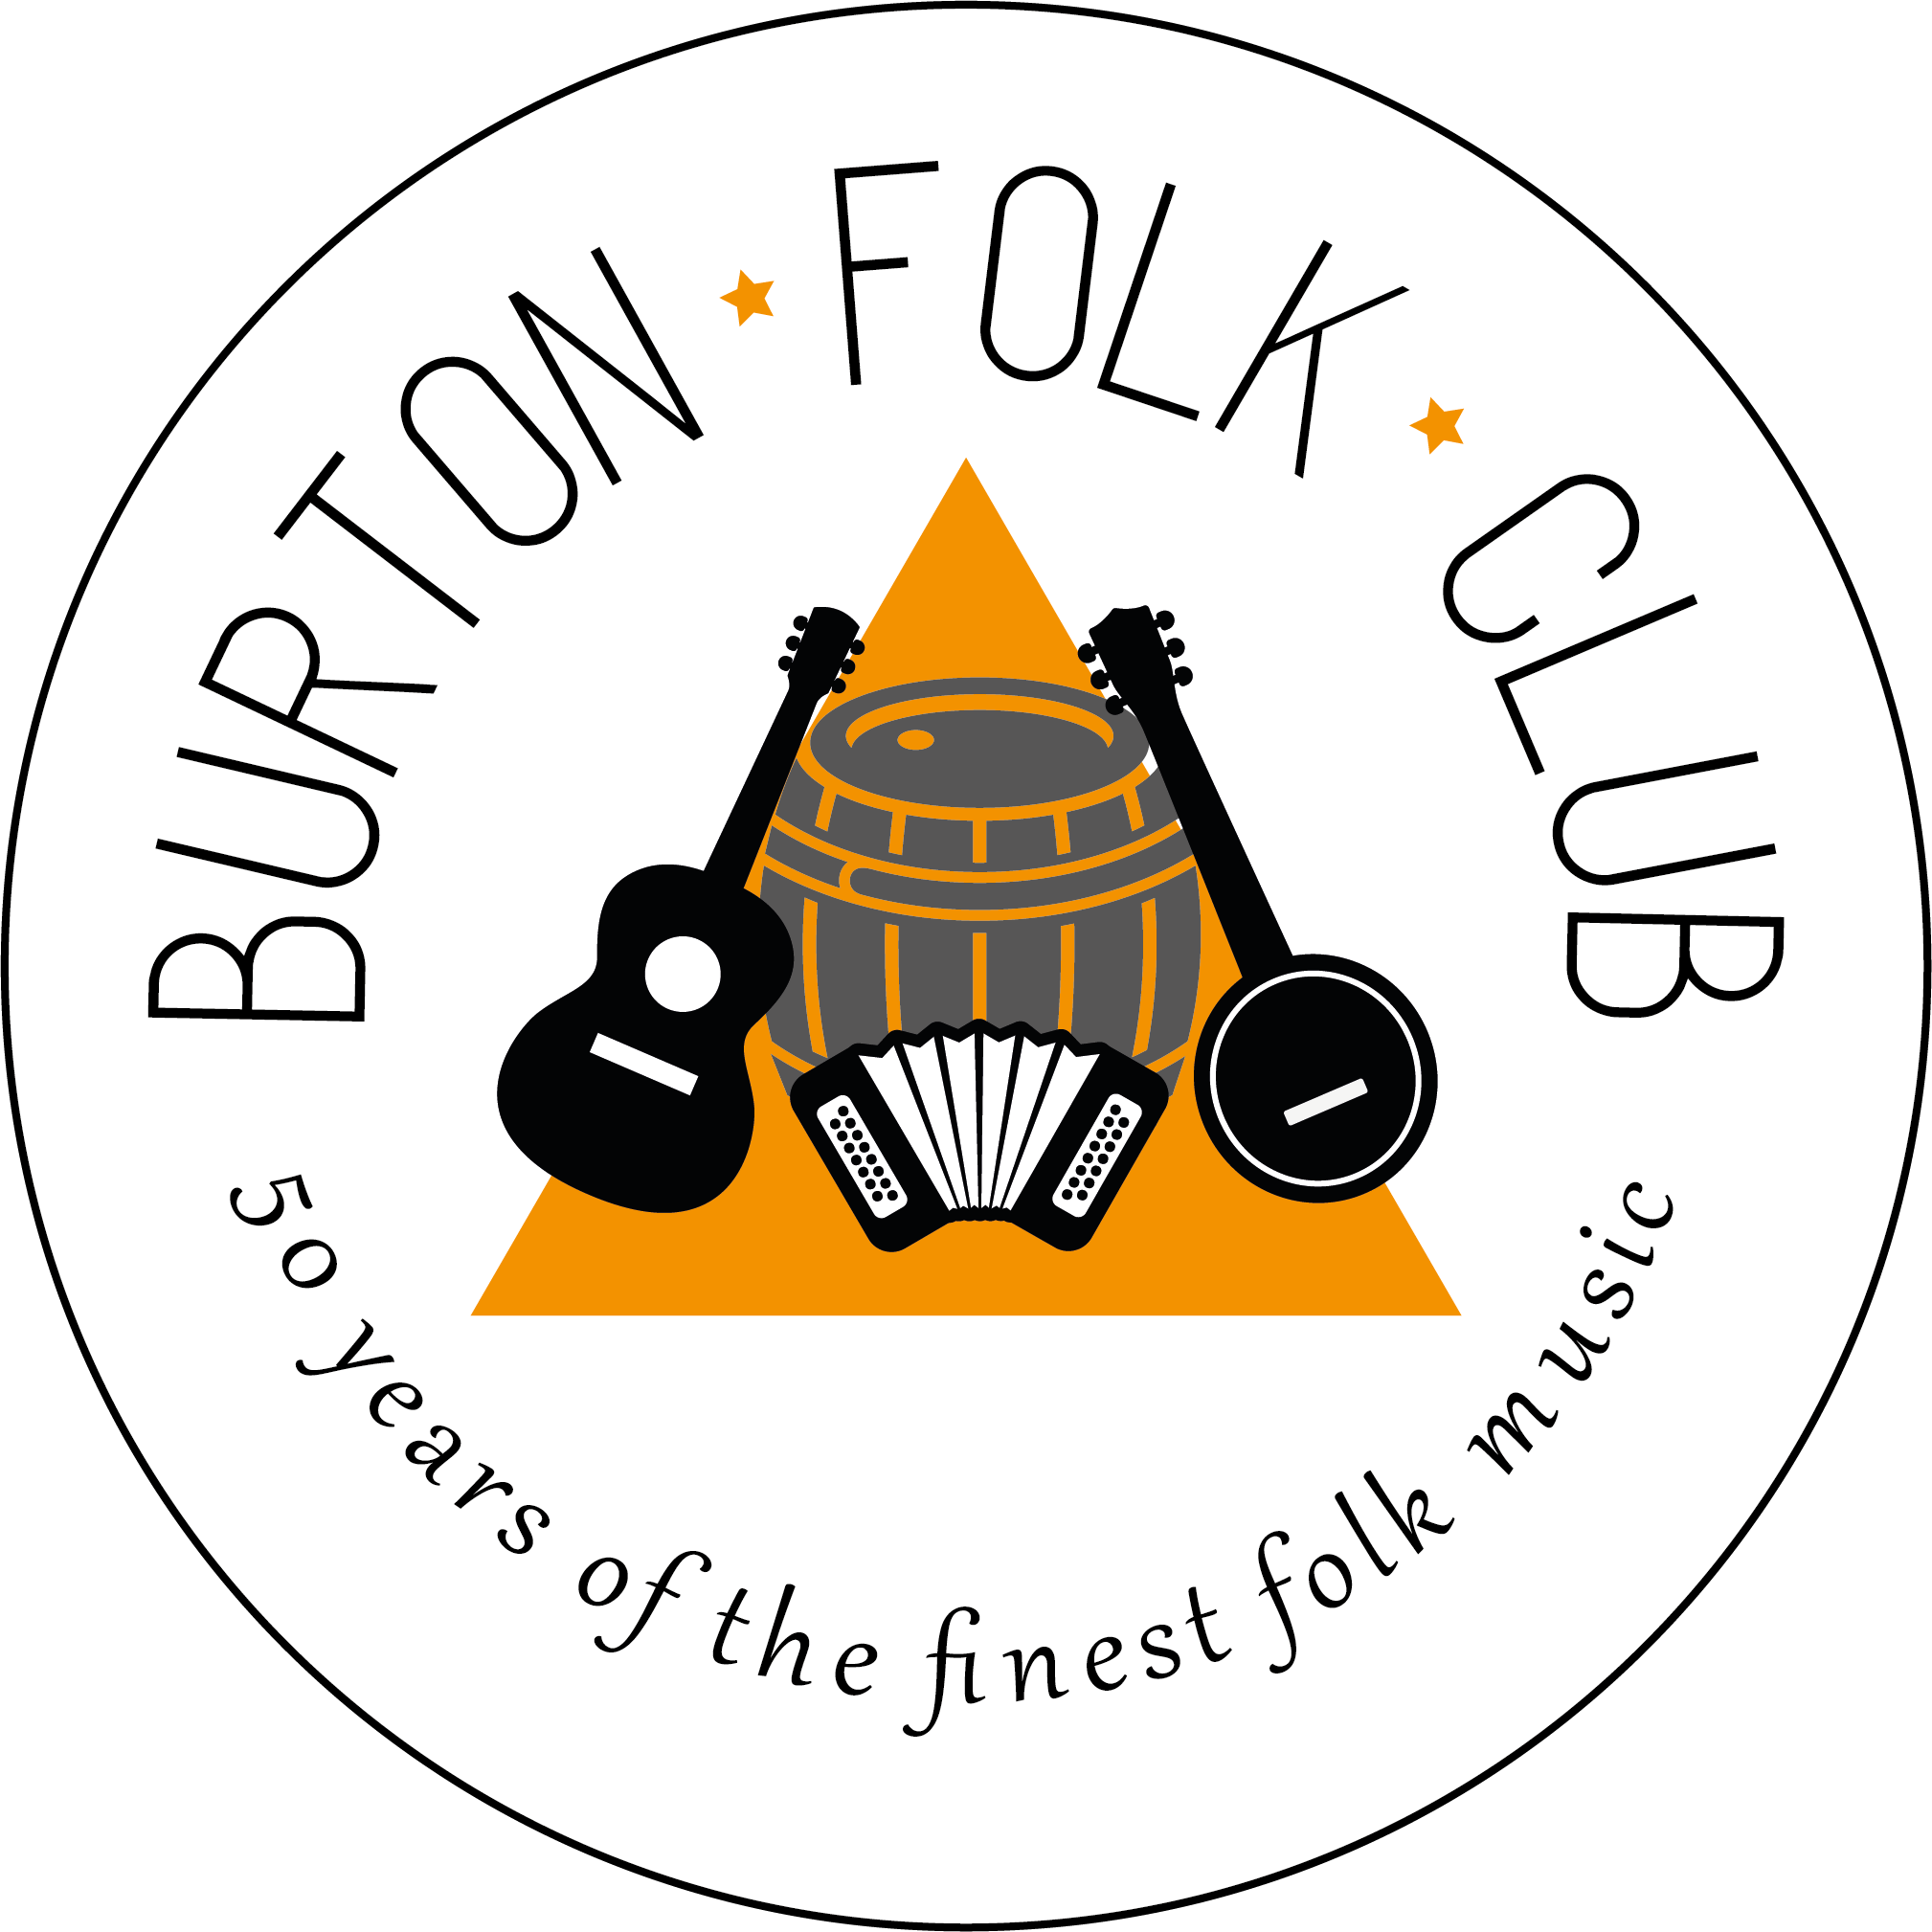 Burton Folk Club